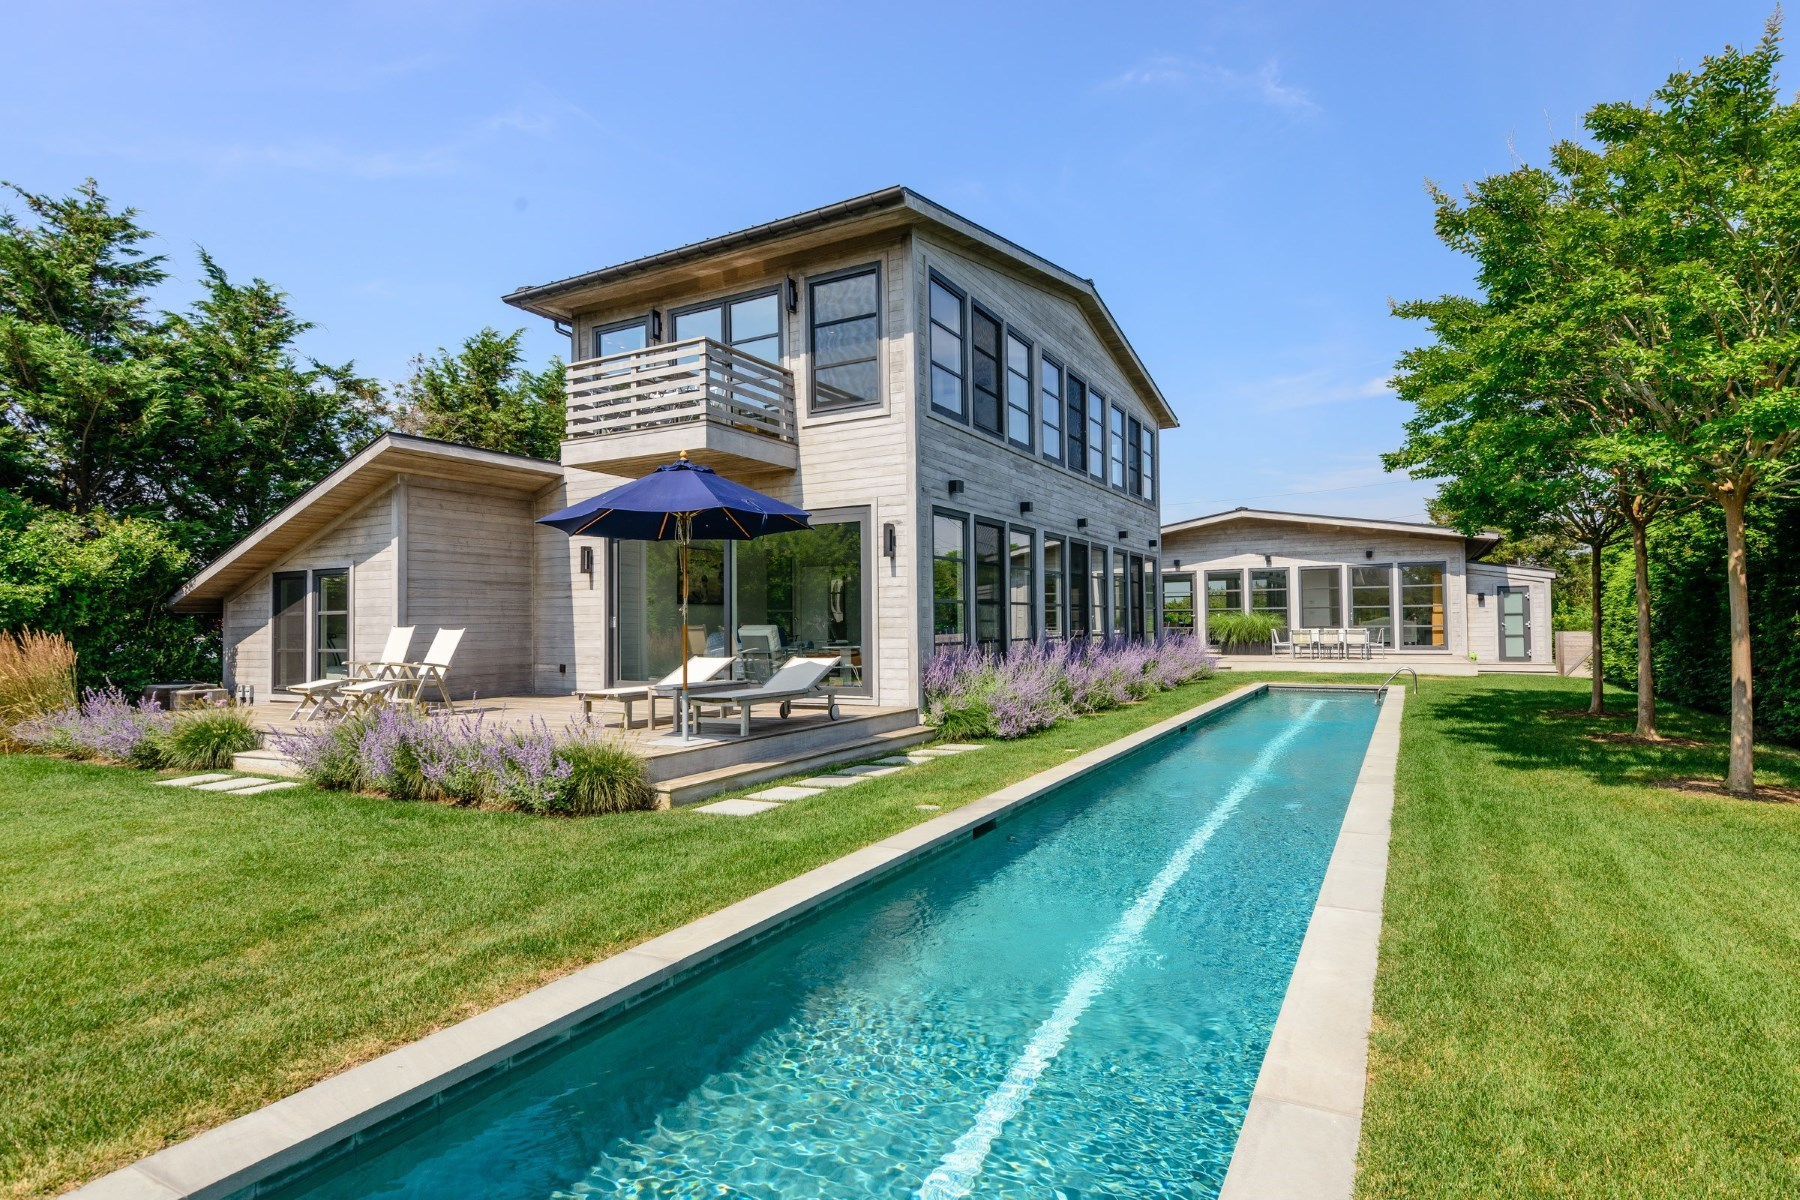 Single Family Home for Sale at Modern Compound, Immediate Ocean Access 108 Town Line Road Sagaponack South, Sagaponack, New York, 11962 United States